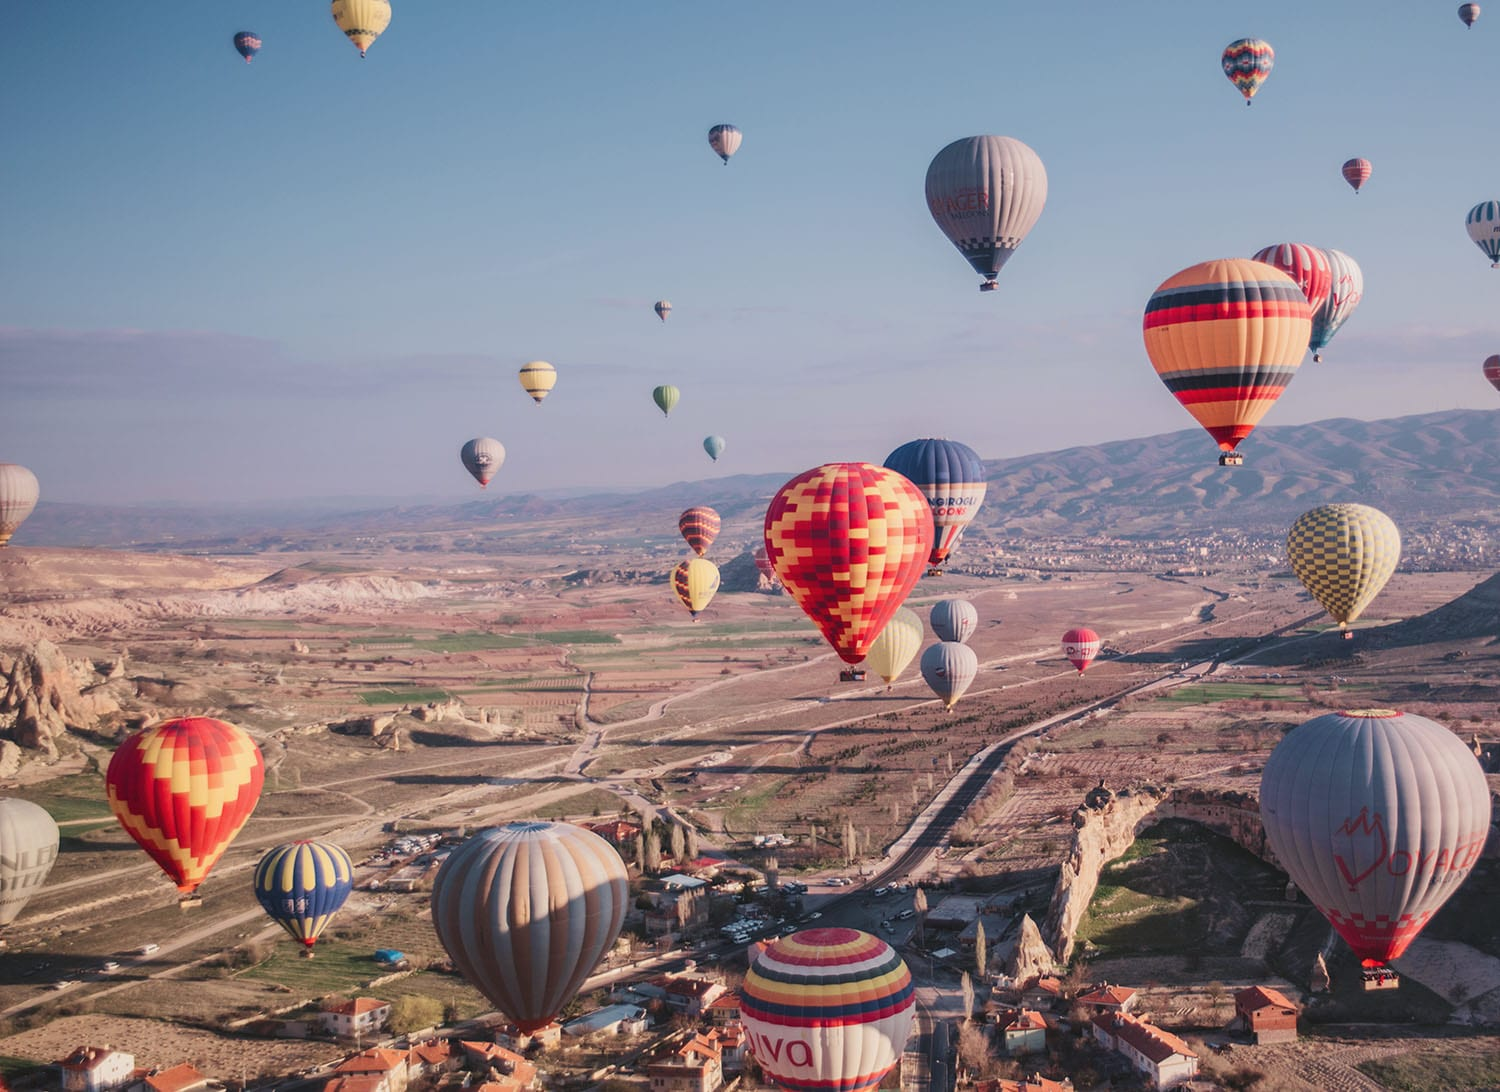 Magical hot air ballooning in Cappadocia, Turkey